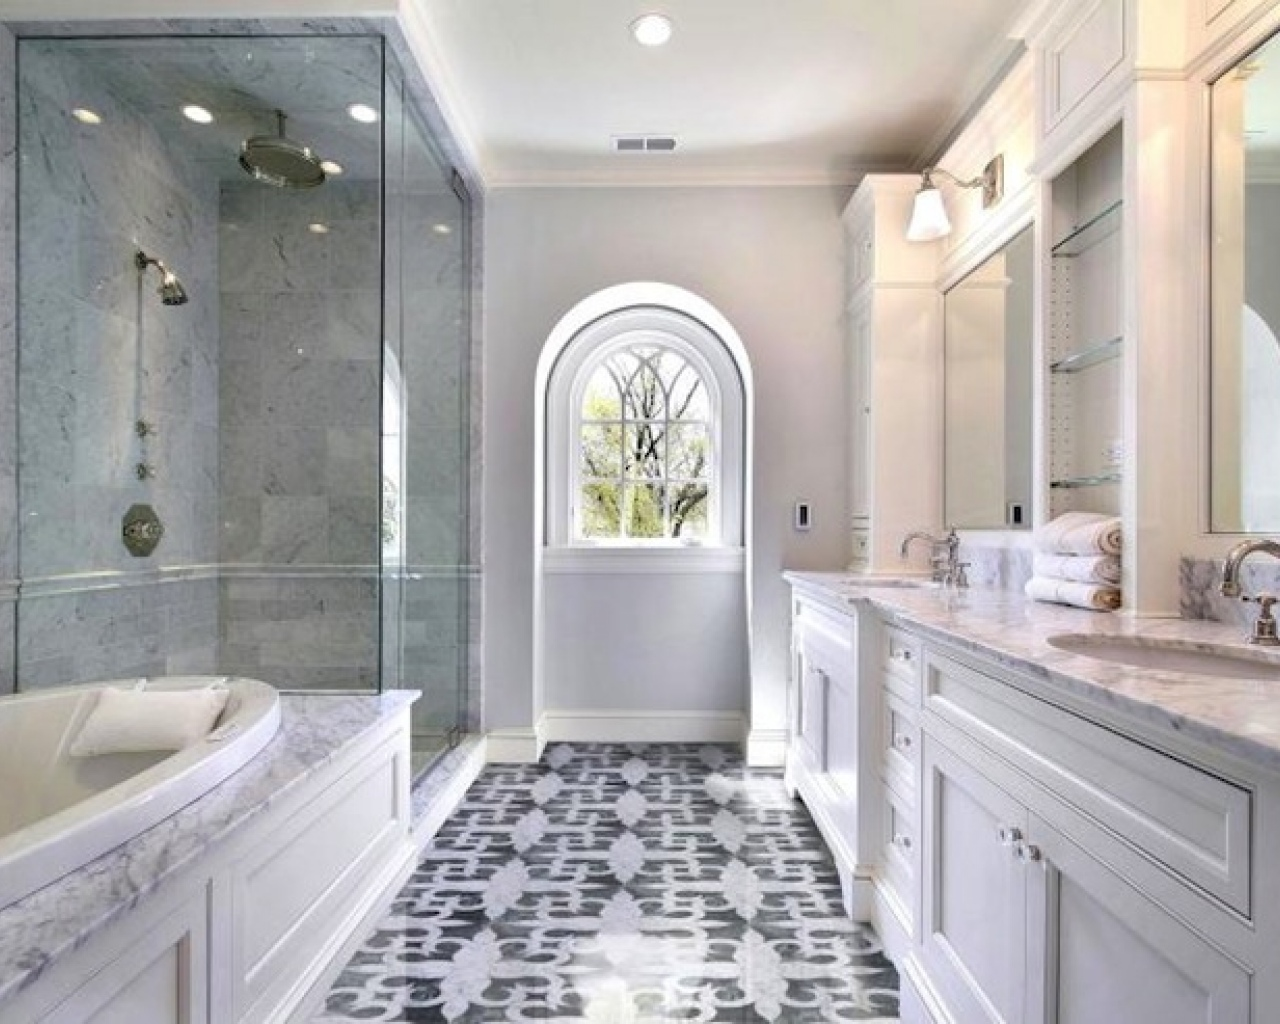 25 amazing italian bathroom tile designs ideas and pictures Bathroom tile ideas mosaic